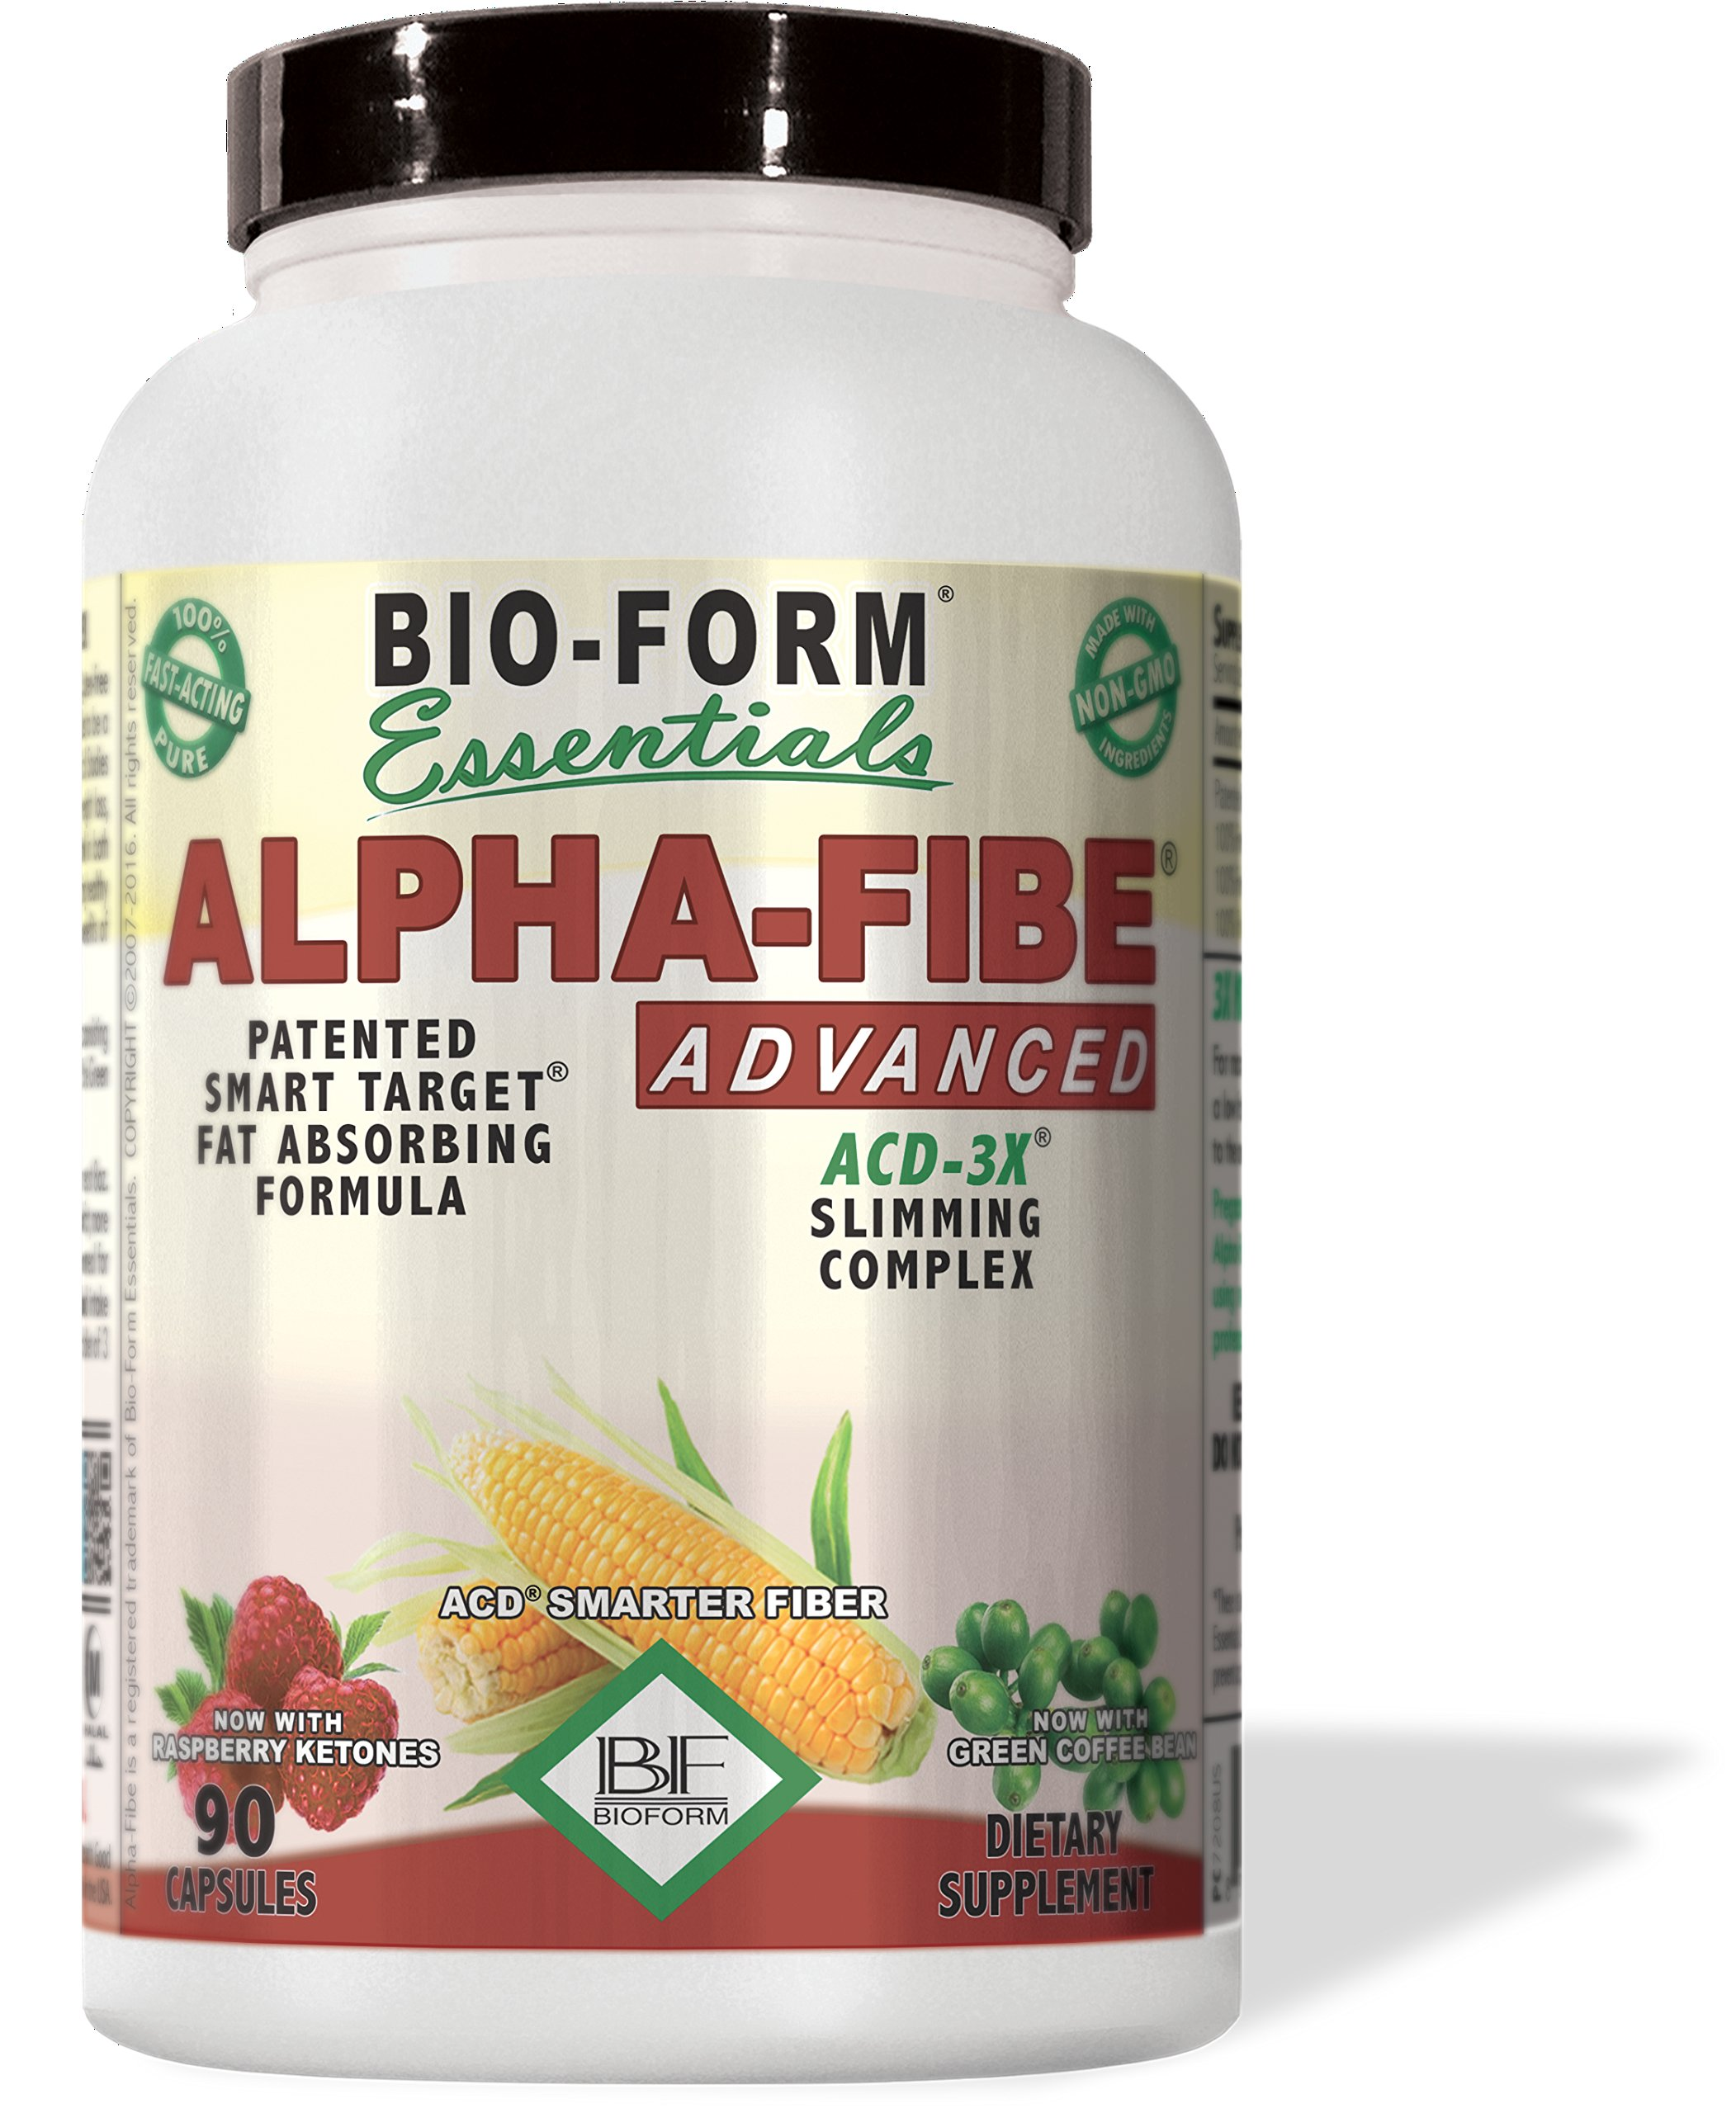 Alpha-Fibe Advanced ACD-3X Smart Weight Loss Complex (90 Fast-Acting Capsules) by Bio-Form by Alpha-Fibe